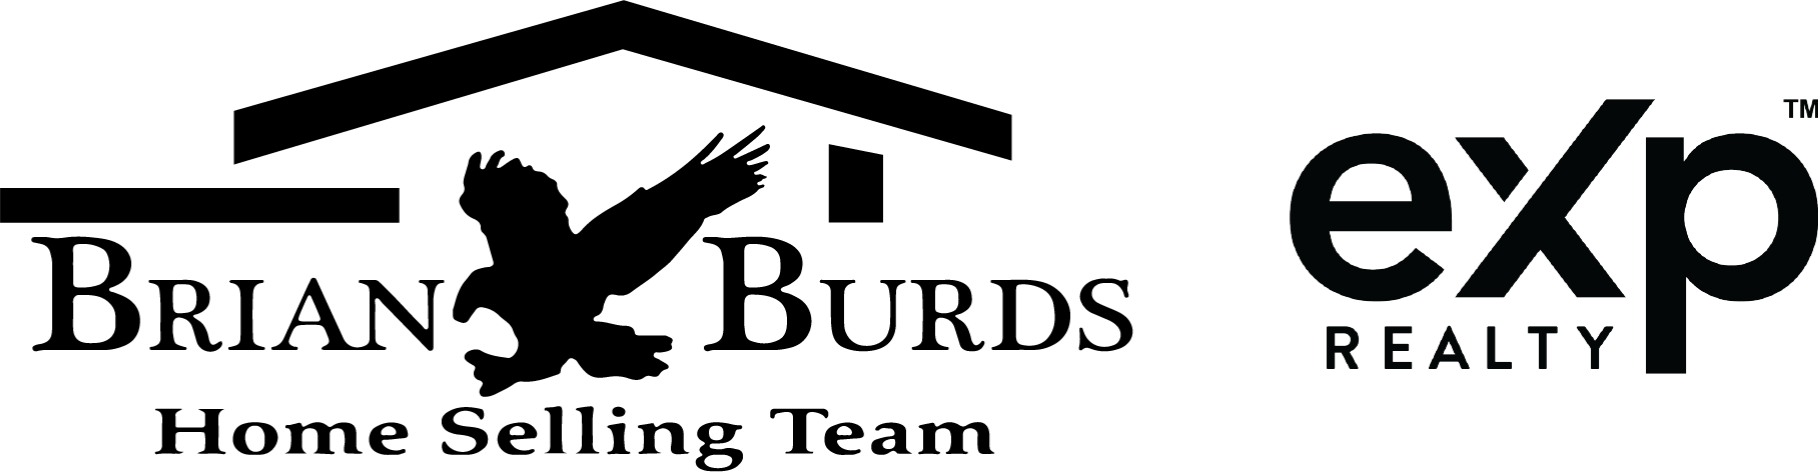 Brian Burds Home Selling Team logo